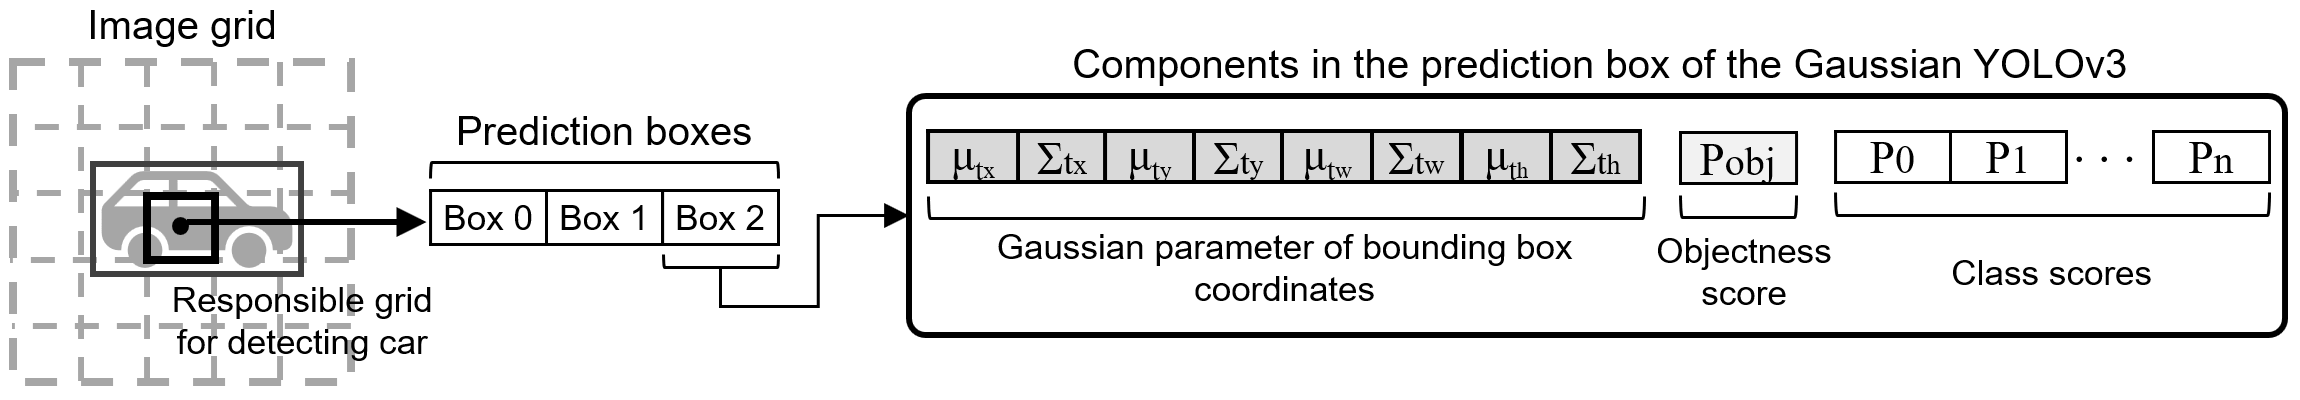 Papers With Code : Gaussian YOLOv3: An Accurate and Fast